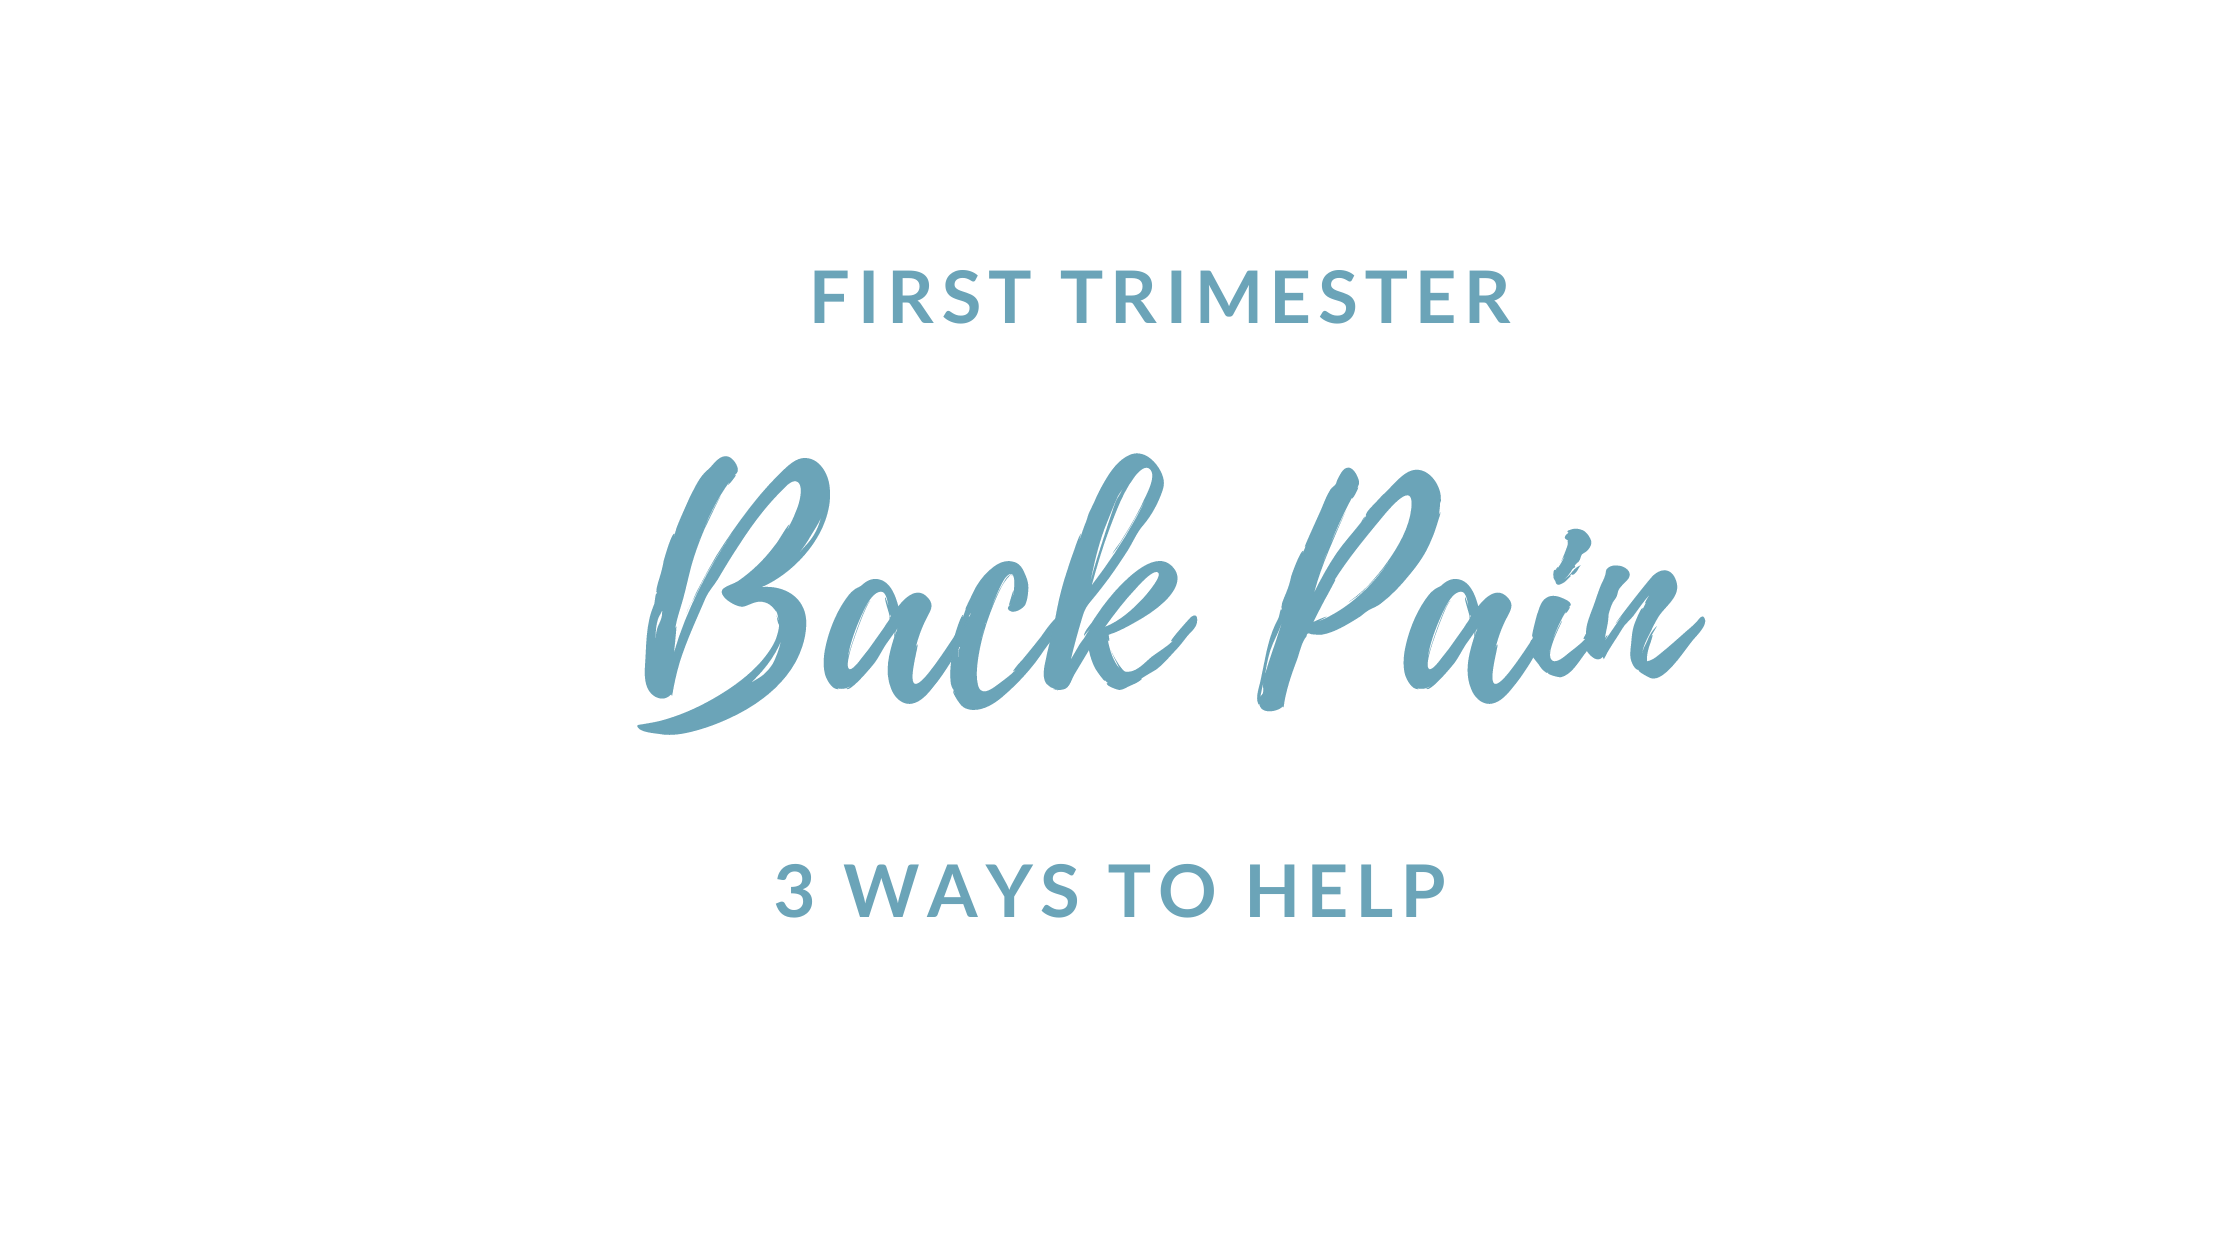 First trimester back pain